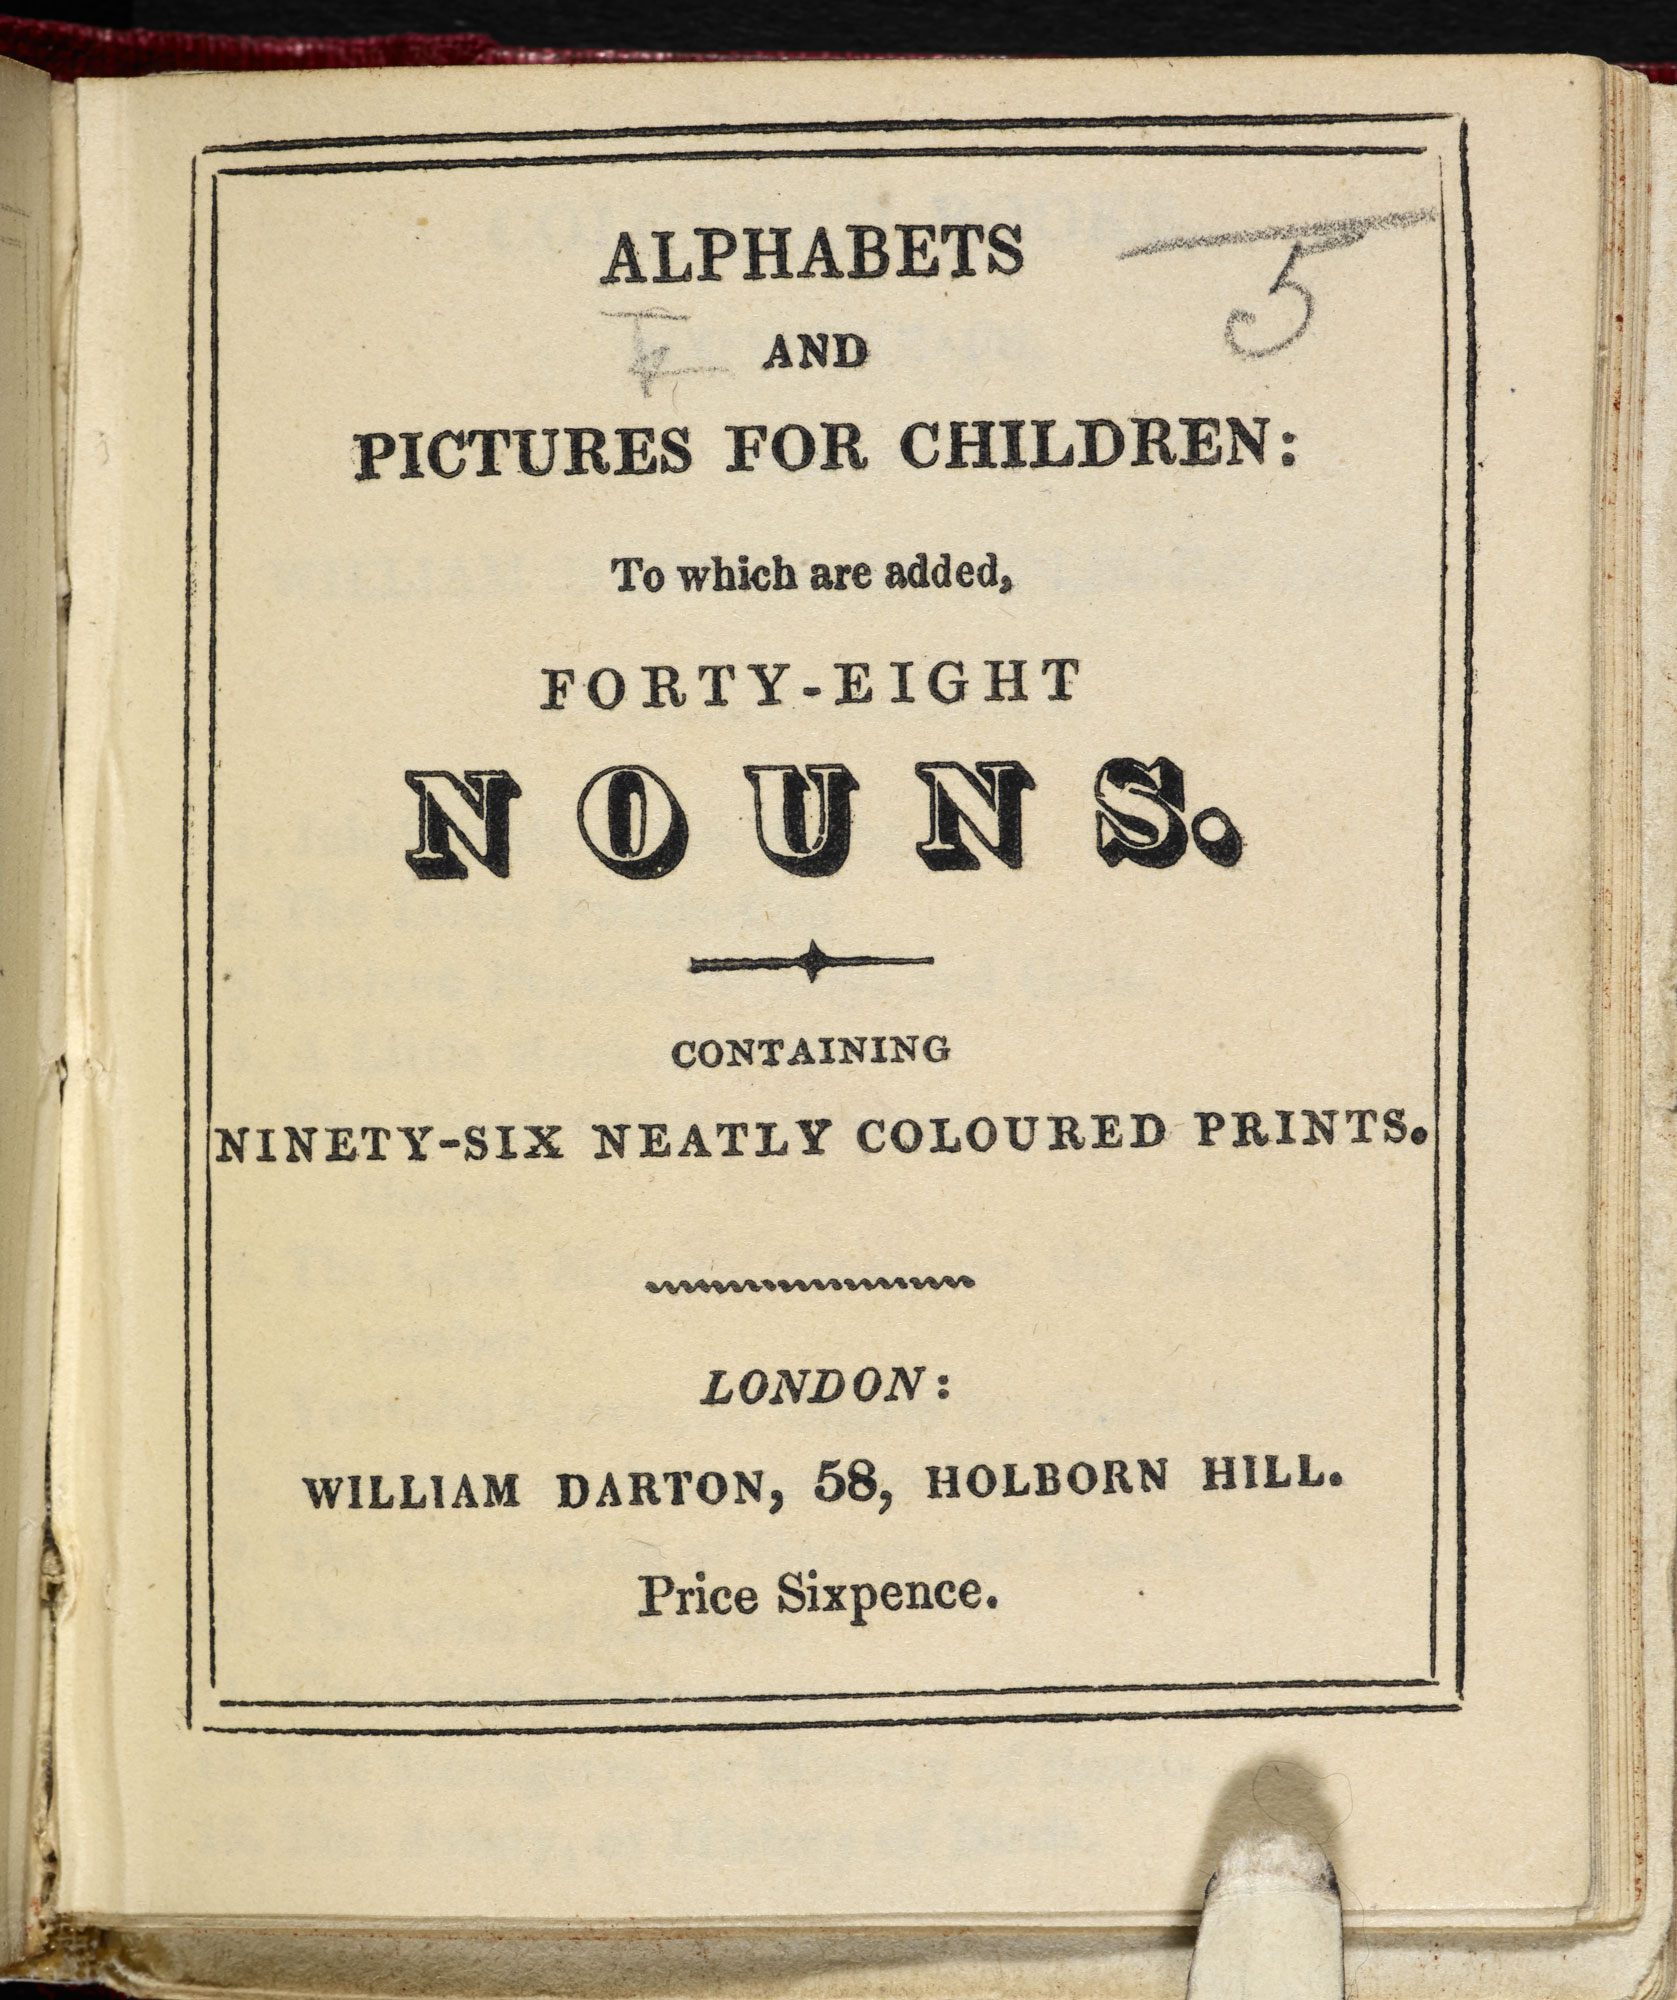 Alphabets and Pictures for Children [page: title page]